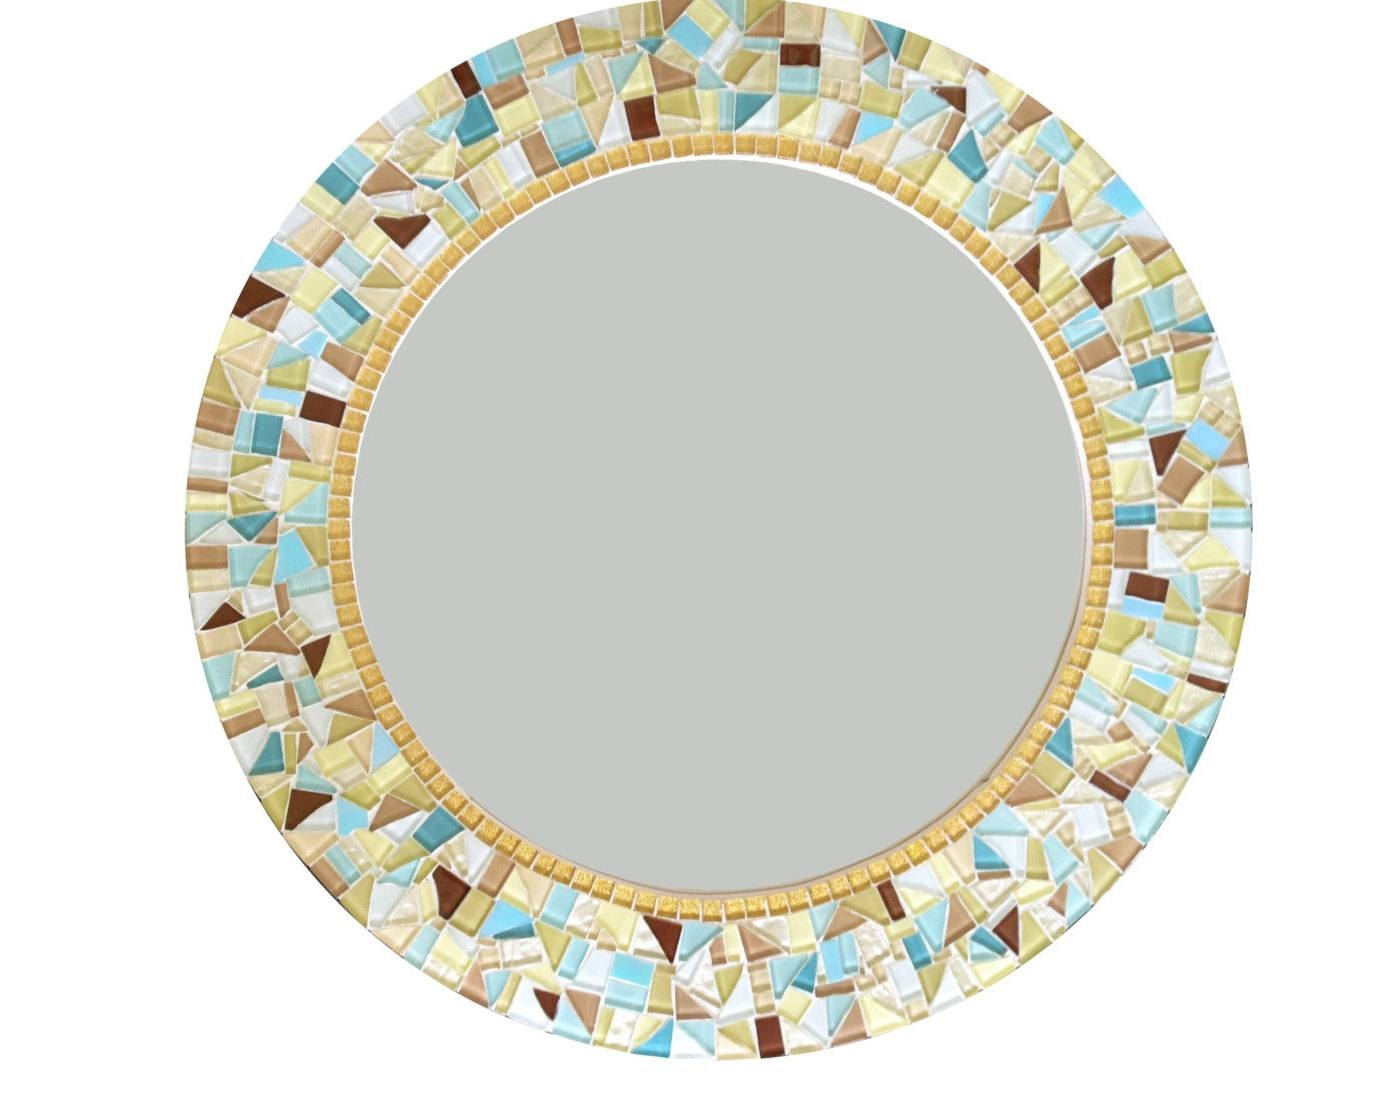 Wall Mirror // Round Mosaic Mirror // Decorative Mirror // Regarding Round Mosaic Mirrors (View 12 of 15)